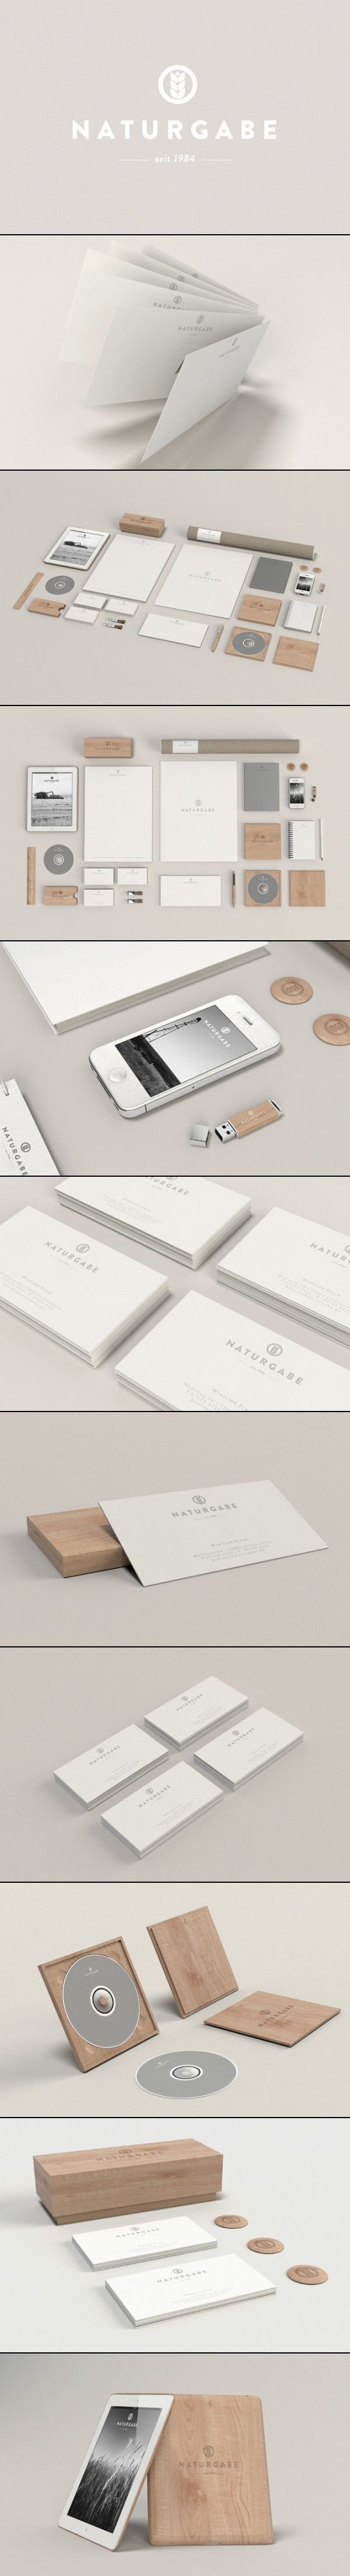 Naturgabe | #stationary #corporate #design #corporatedesign #identity #branding #marketing < repinned by www.BlickeDeeler.de | Take a look at www.LogoGestaltung-Hamburg.de